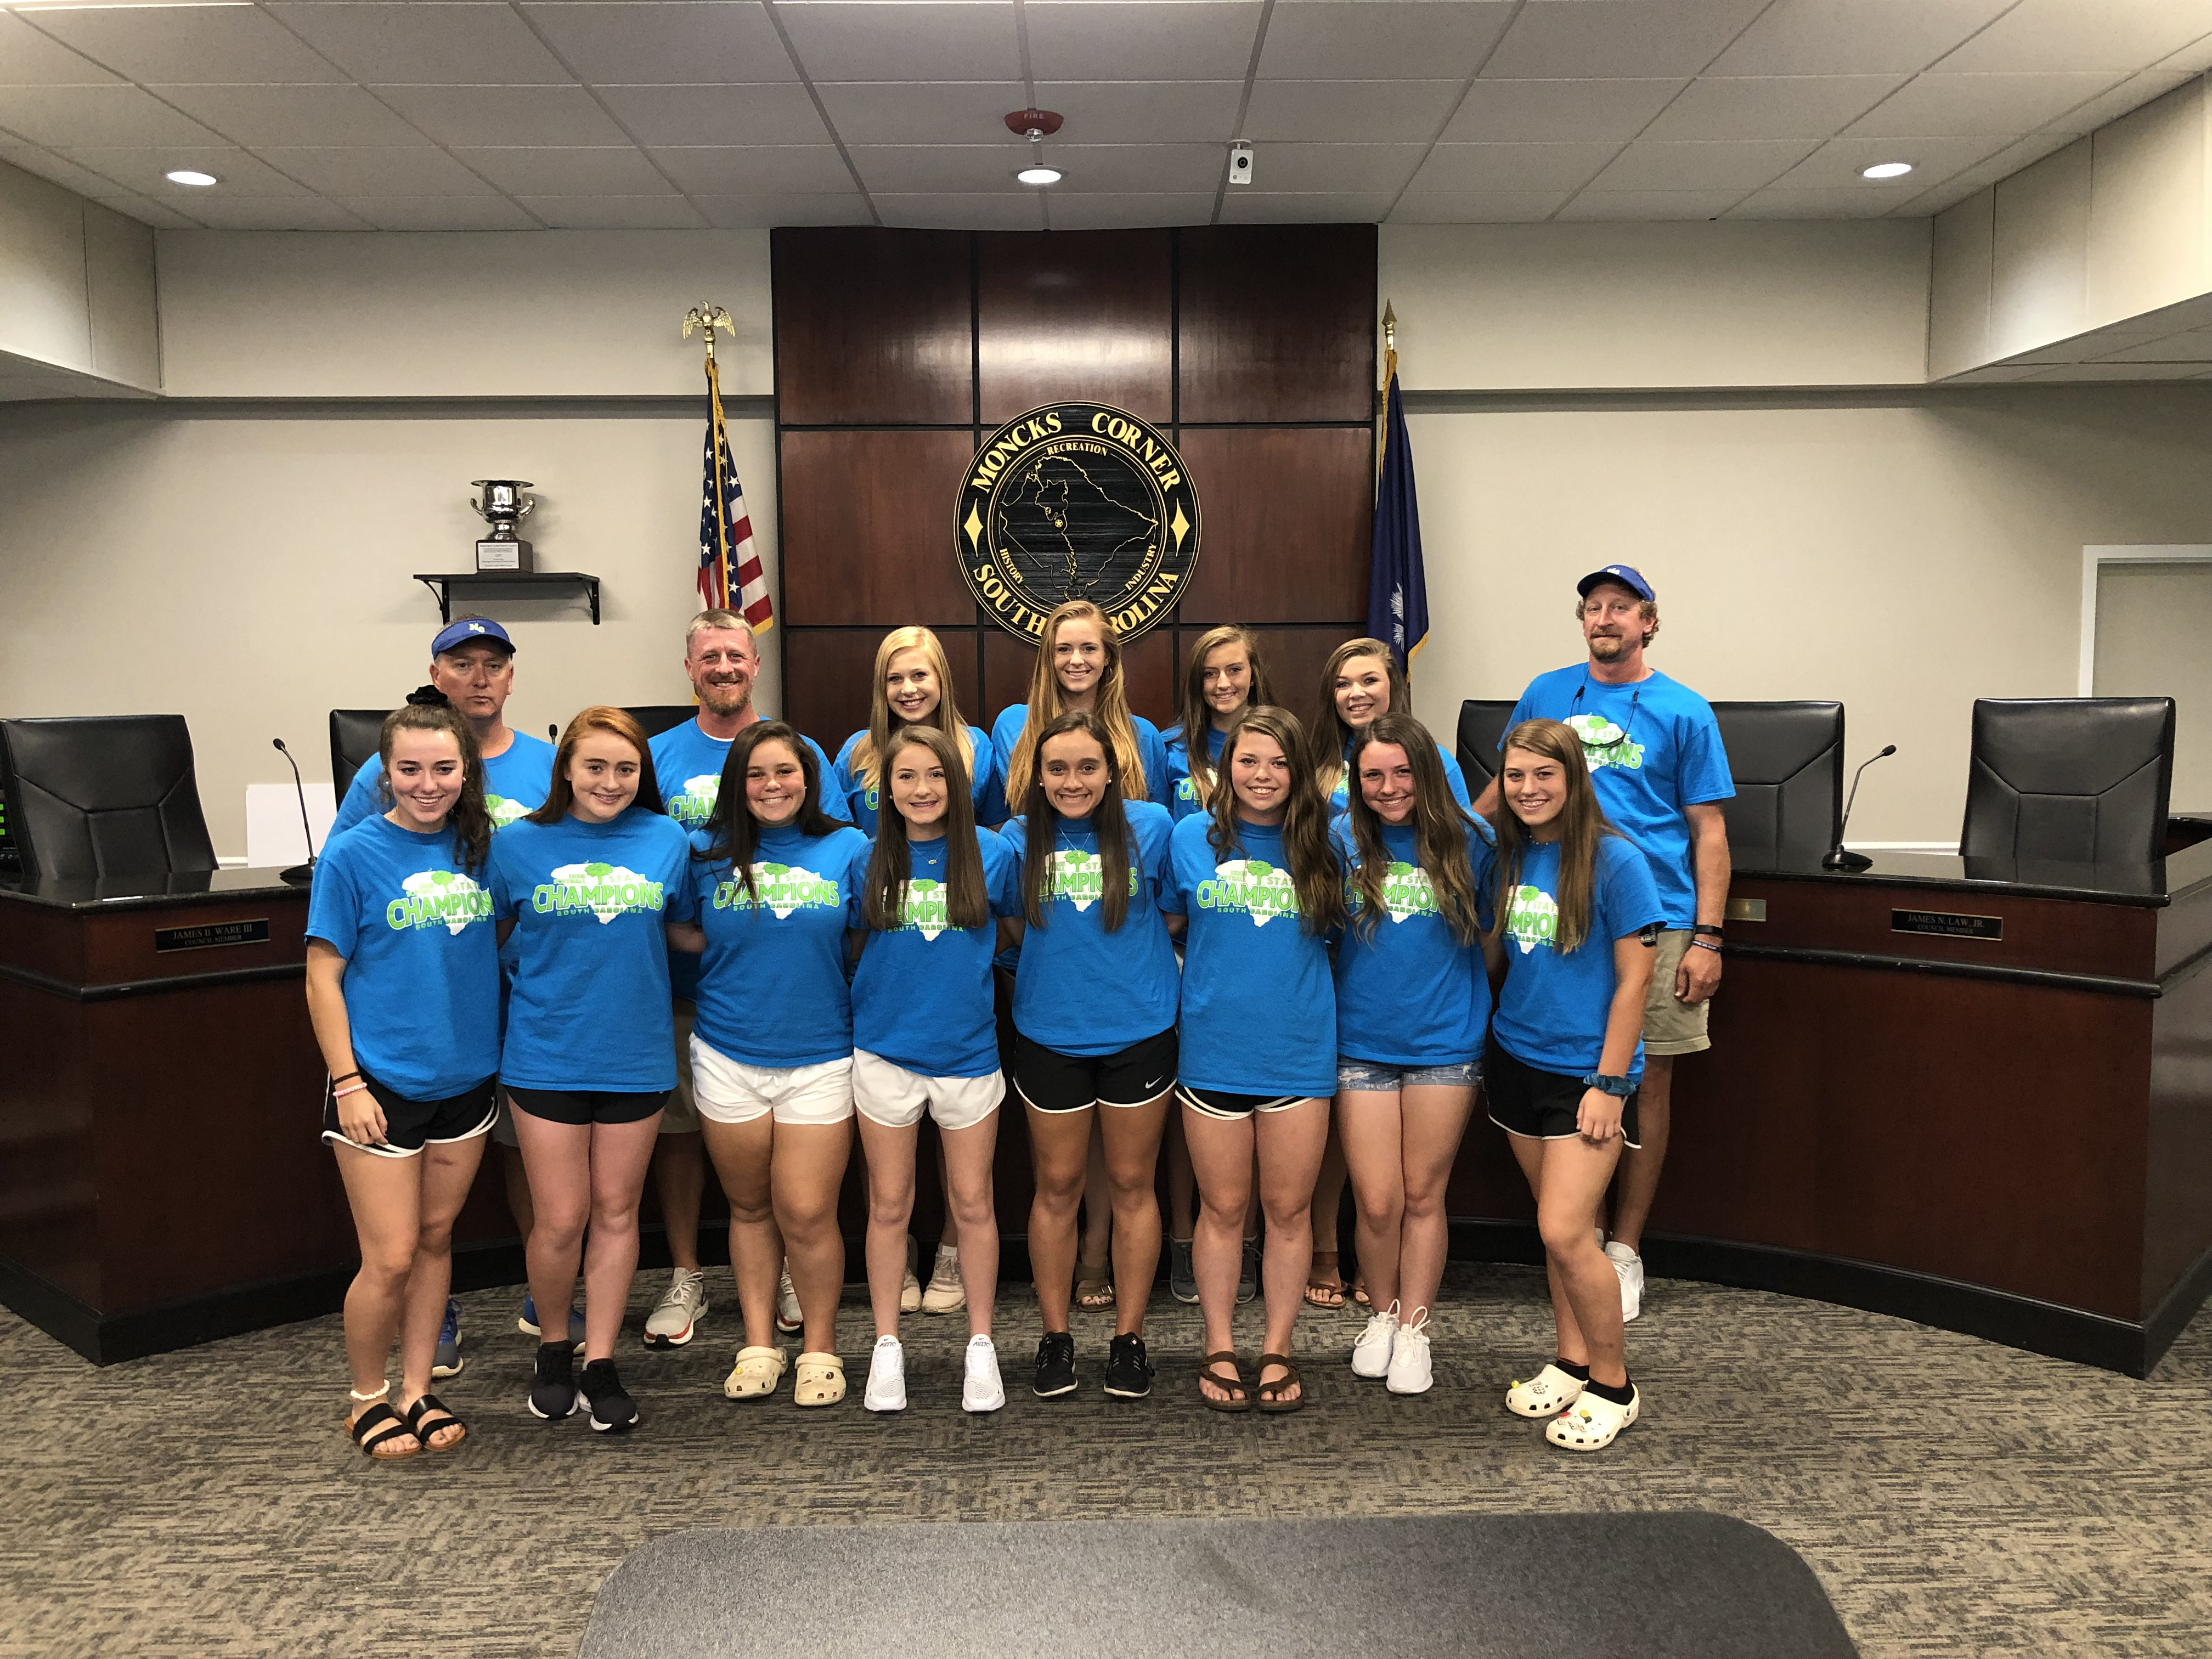 Dixie Belles softball team is going to the World Series